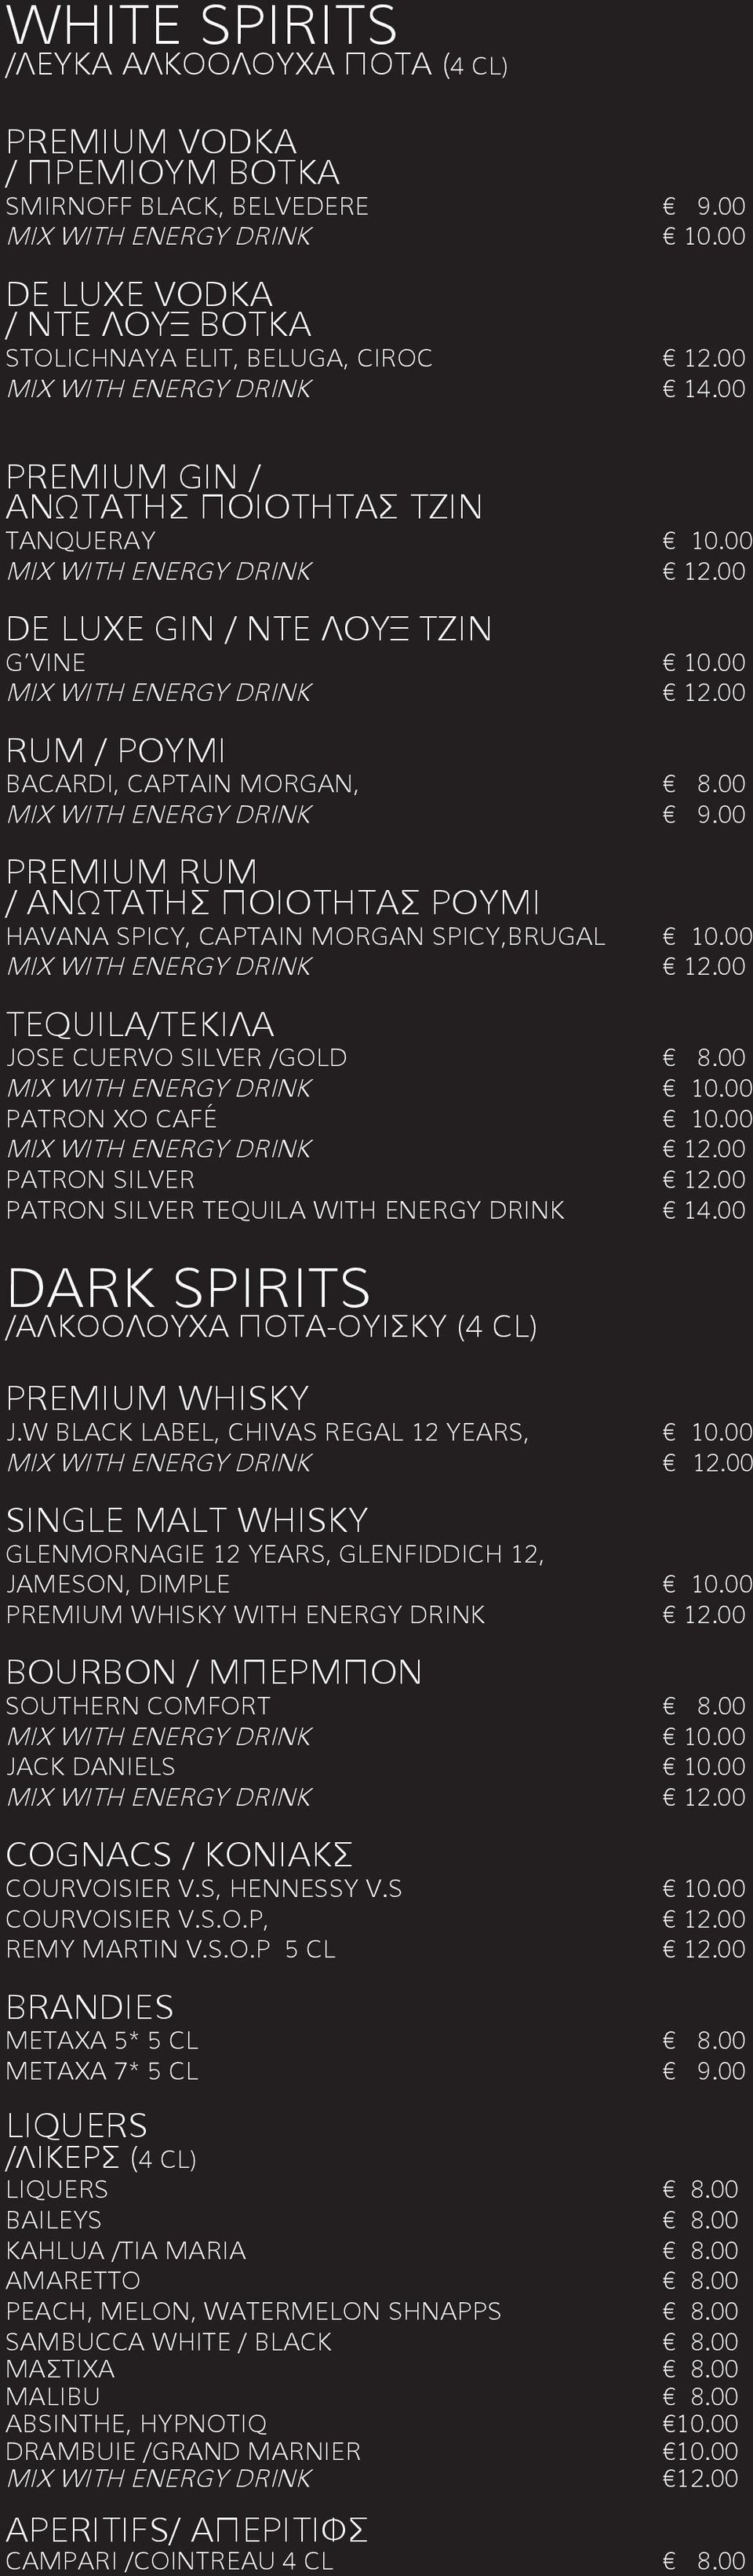 00 PREMIUM RUM / ΑΝΩΤΑΤΗΣ ΠΟΙΟΤΗΤΑΣ ΡΟΥΜΙ HAVANA SPICY, CAPTAIN MORGAN SPICY,BRUGAL 10.00 TEQUILA/ΤΕΚΙΛΑ JOSE CUERVO SILVER /GOLD 8.00 MIX WITH ENERGY DRINK 10.00 PATRON XO CAFÉ 10.